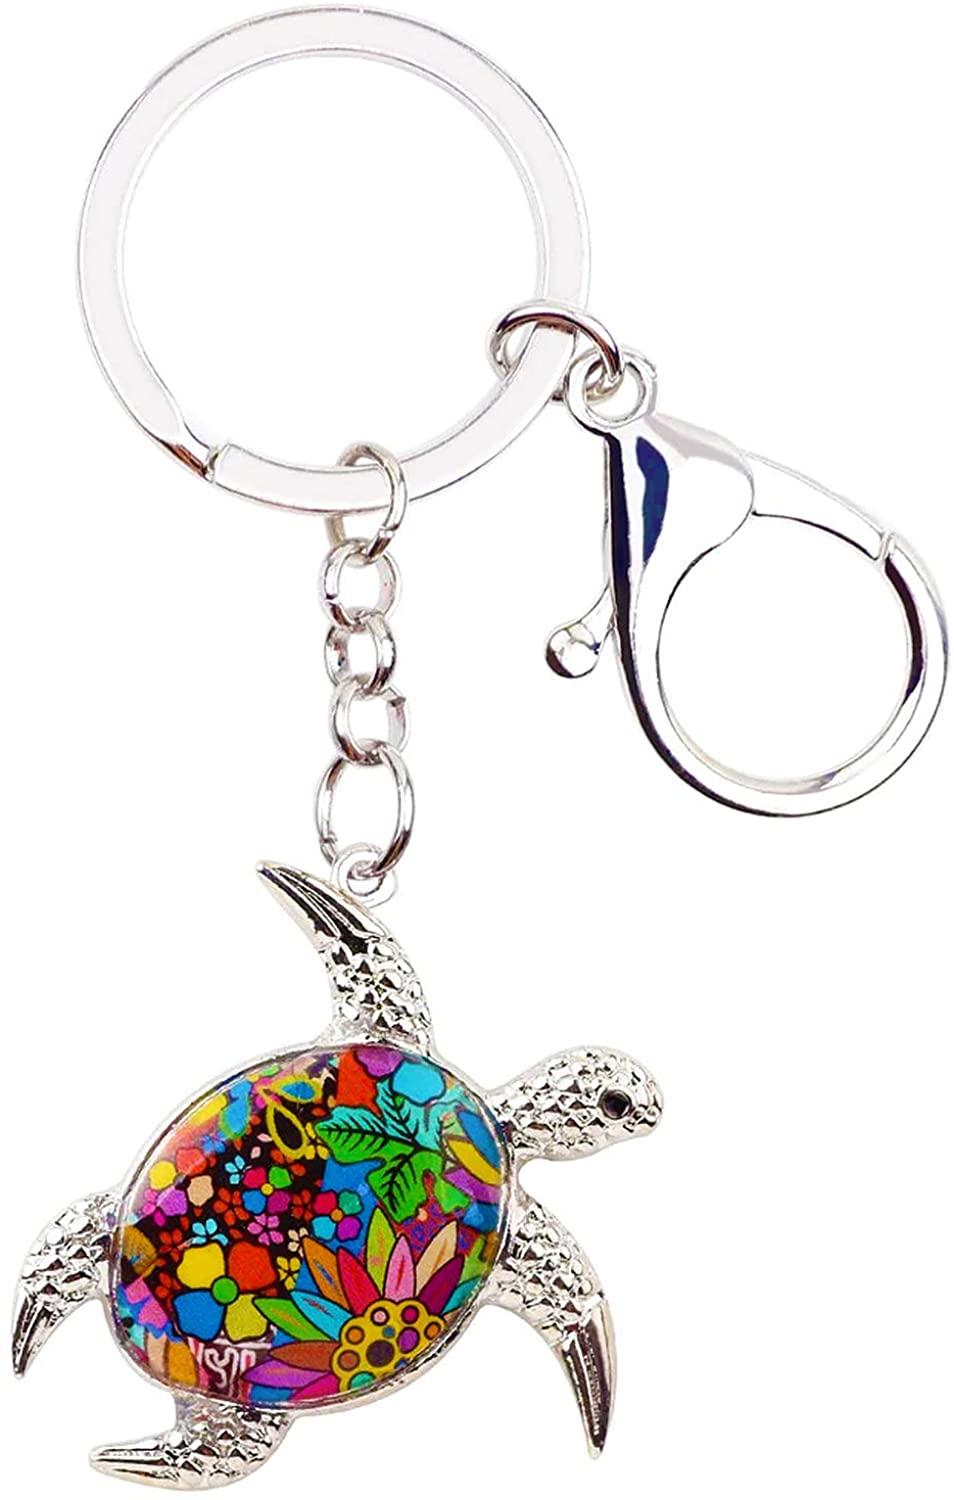 Brilliante Luxe Key Chain - Creative Enamel Metal Sea Turtle Key Chains for Women - Colorful Unique Tortoise Animal Jewelry, Ideal Gift for Mother, Men, and Women - Used for Car Purse and Bag Charms